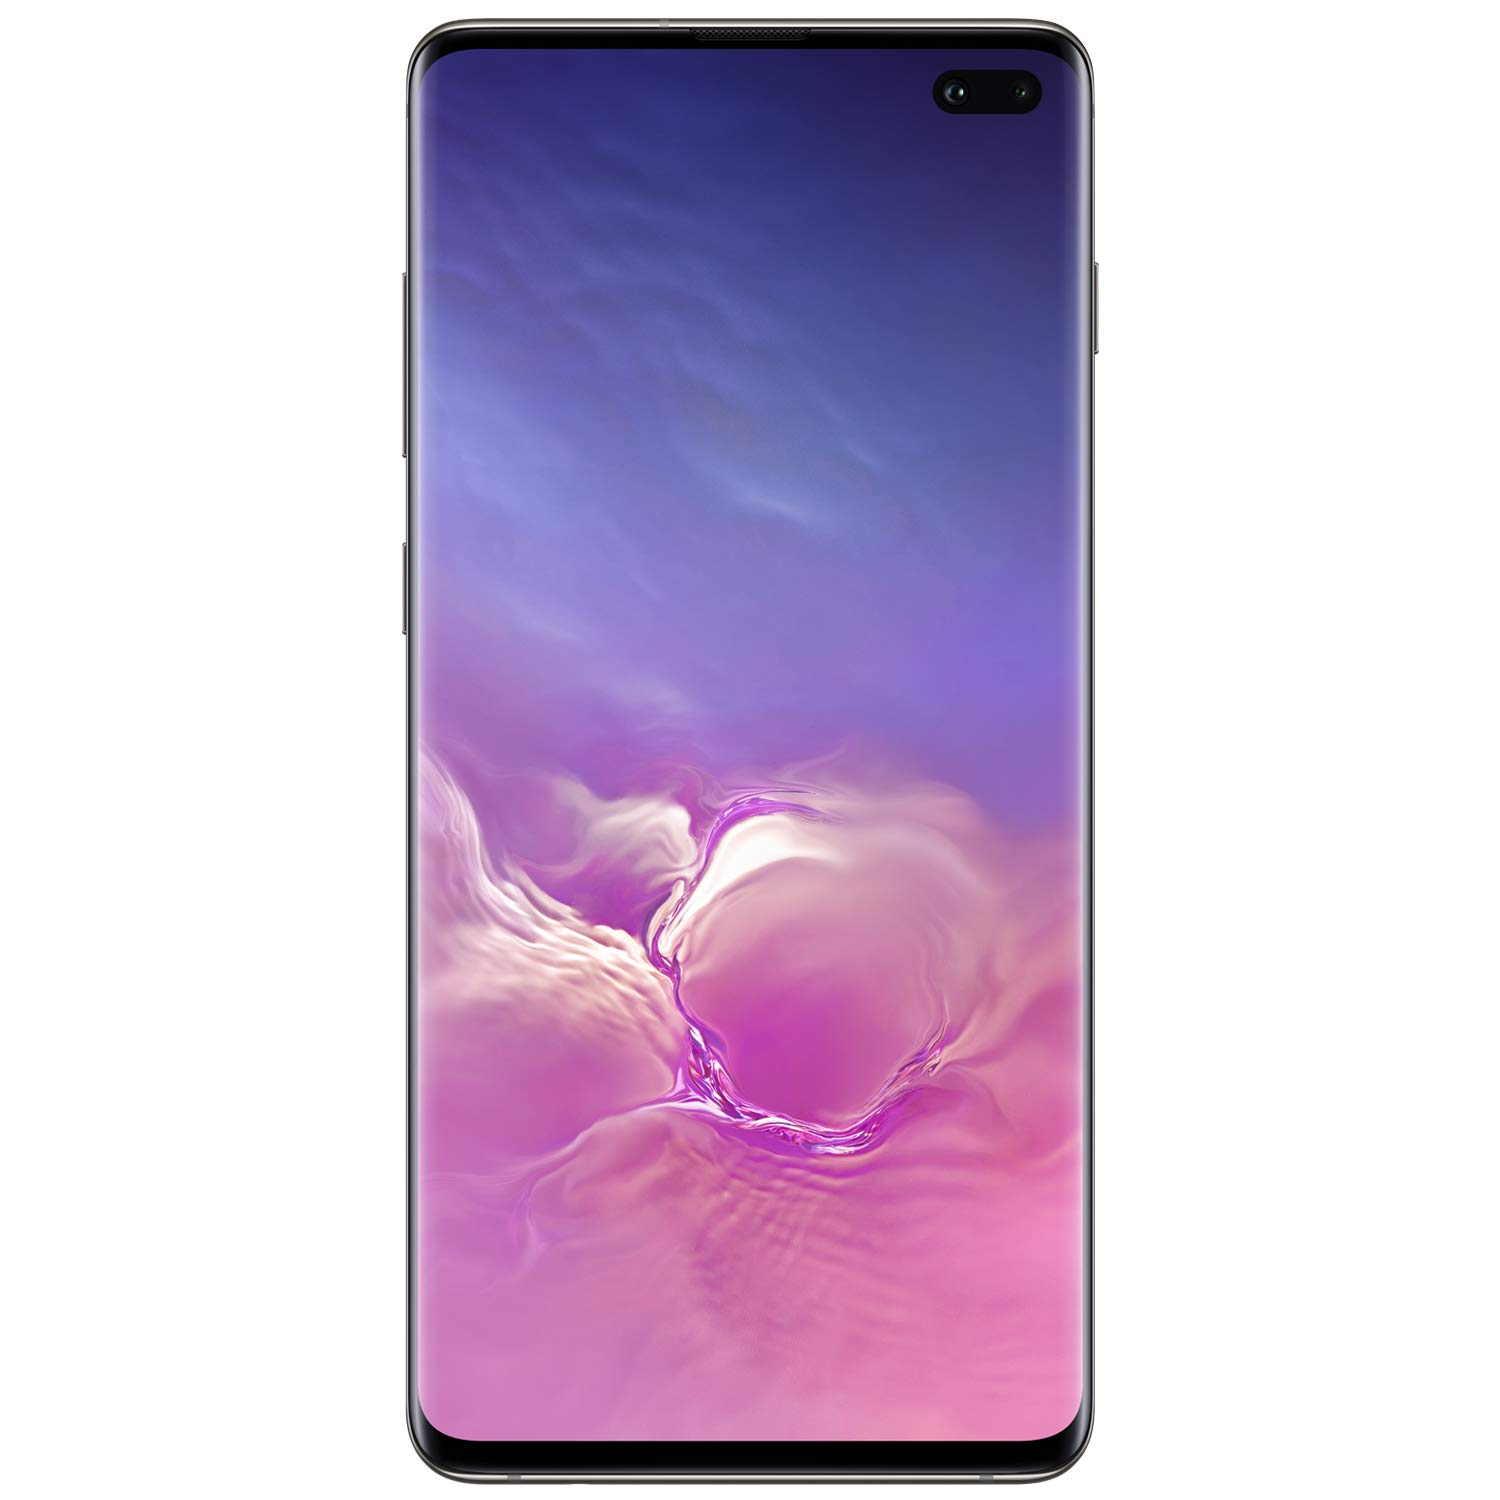 Samsung Galaxy S10+ Factory Unlocked Phone with 512GB